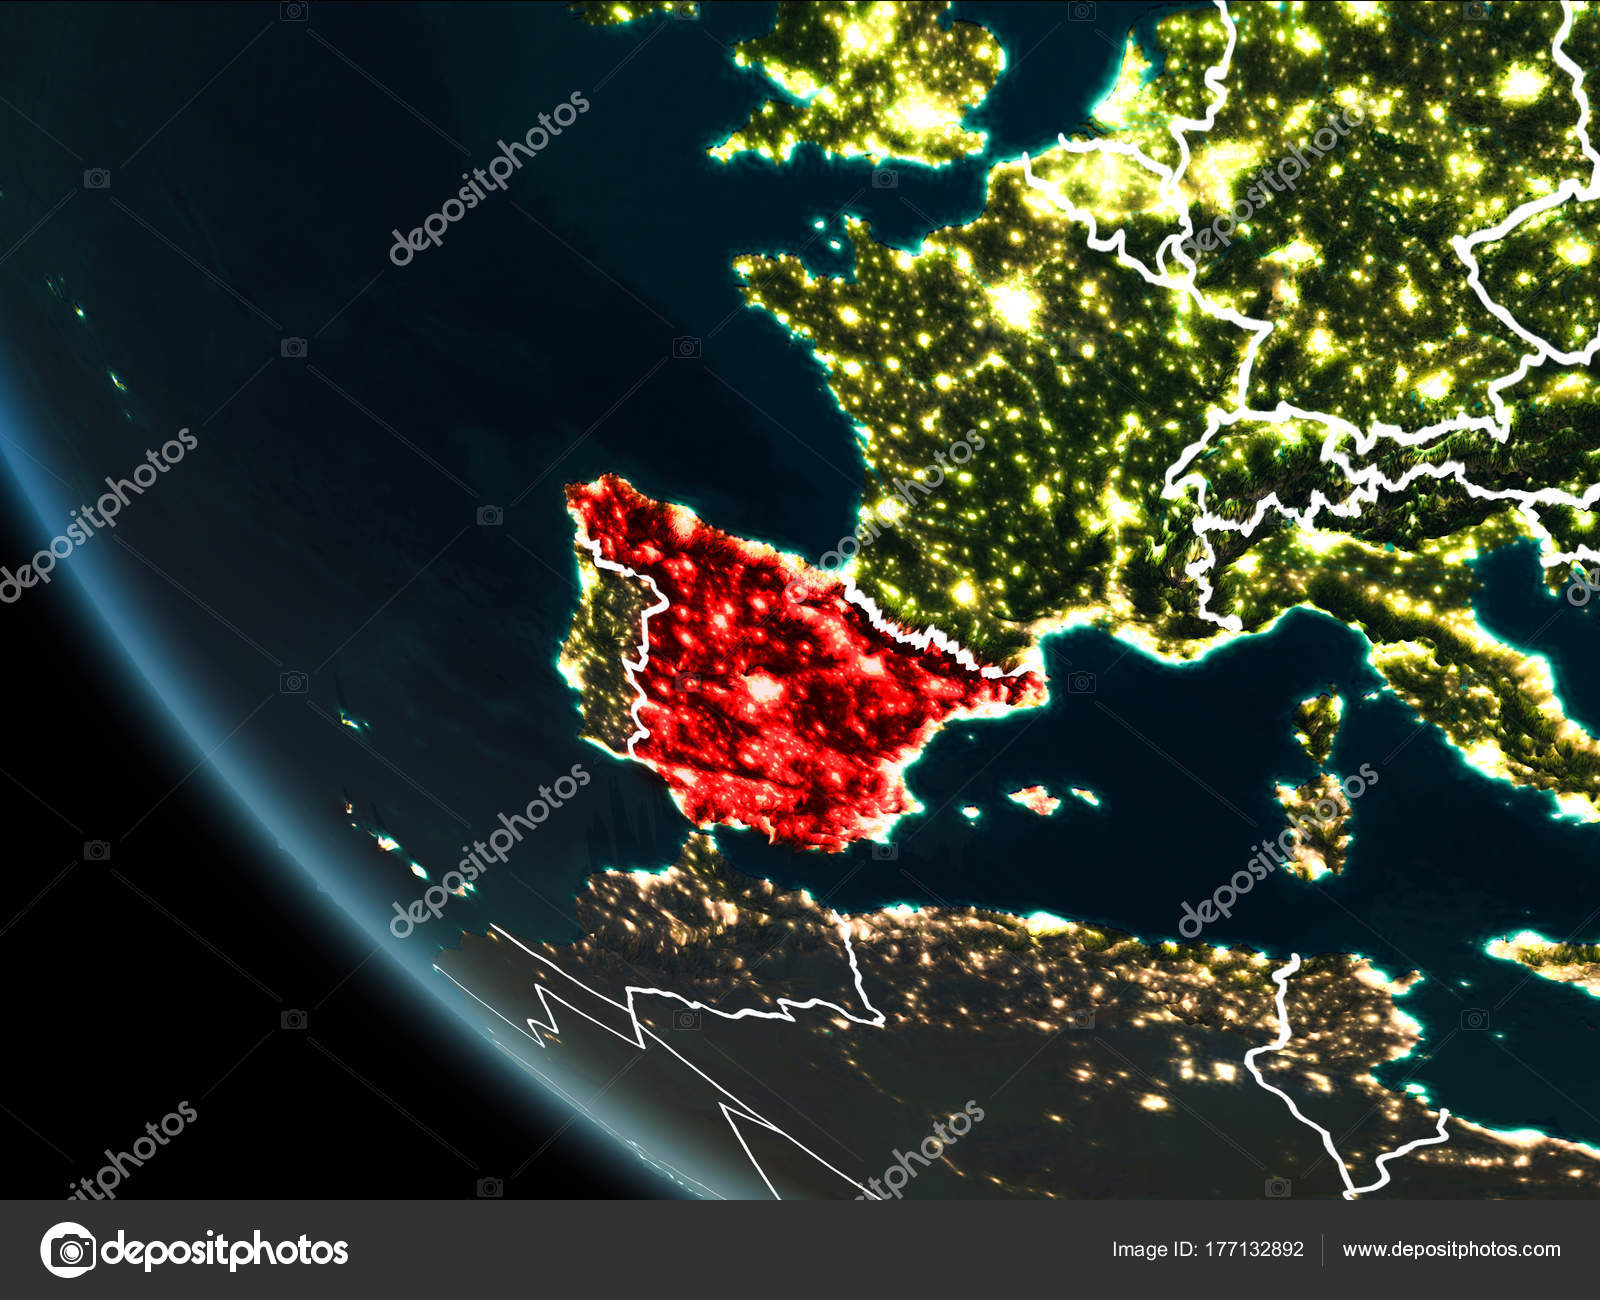 Satellite Map Of Spain.Satellite View Of Spain At Night Stock Photo C Tom Griger 177132892